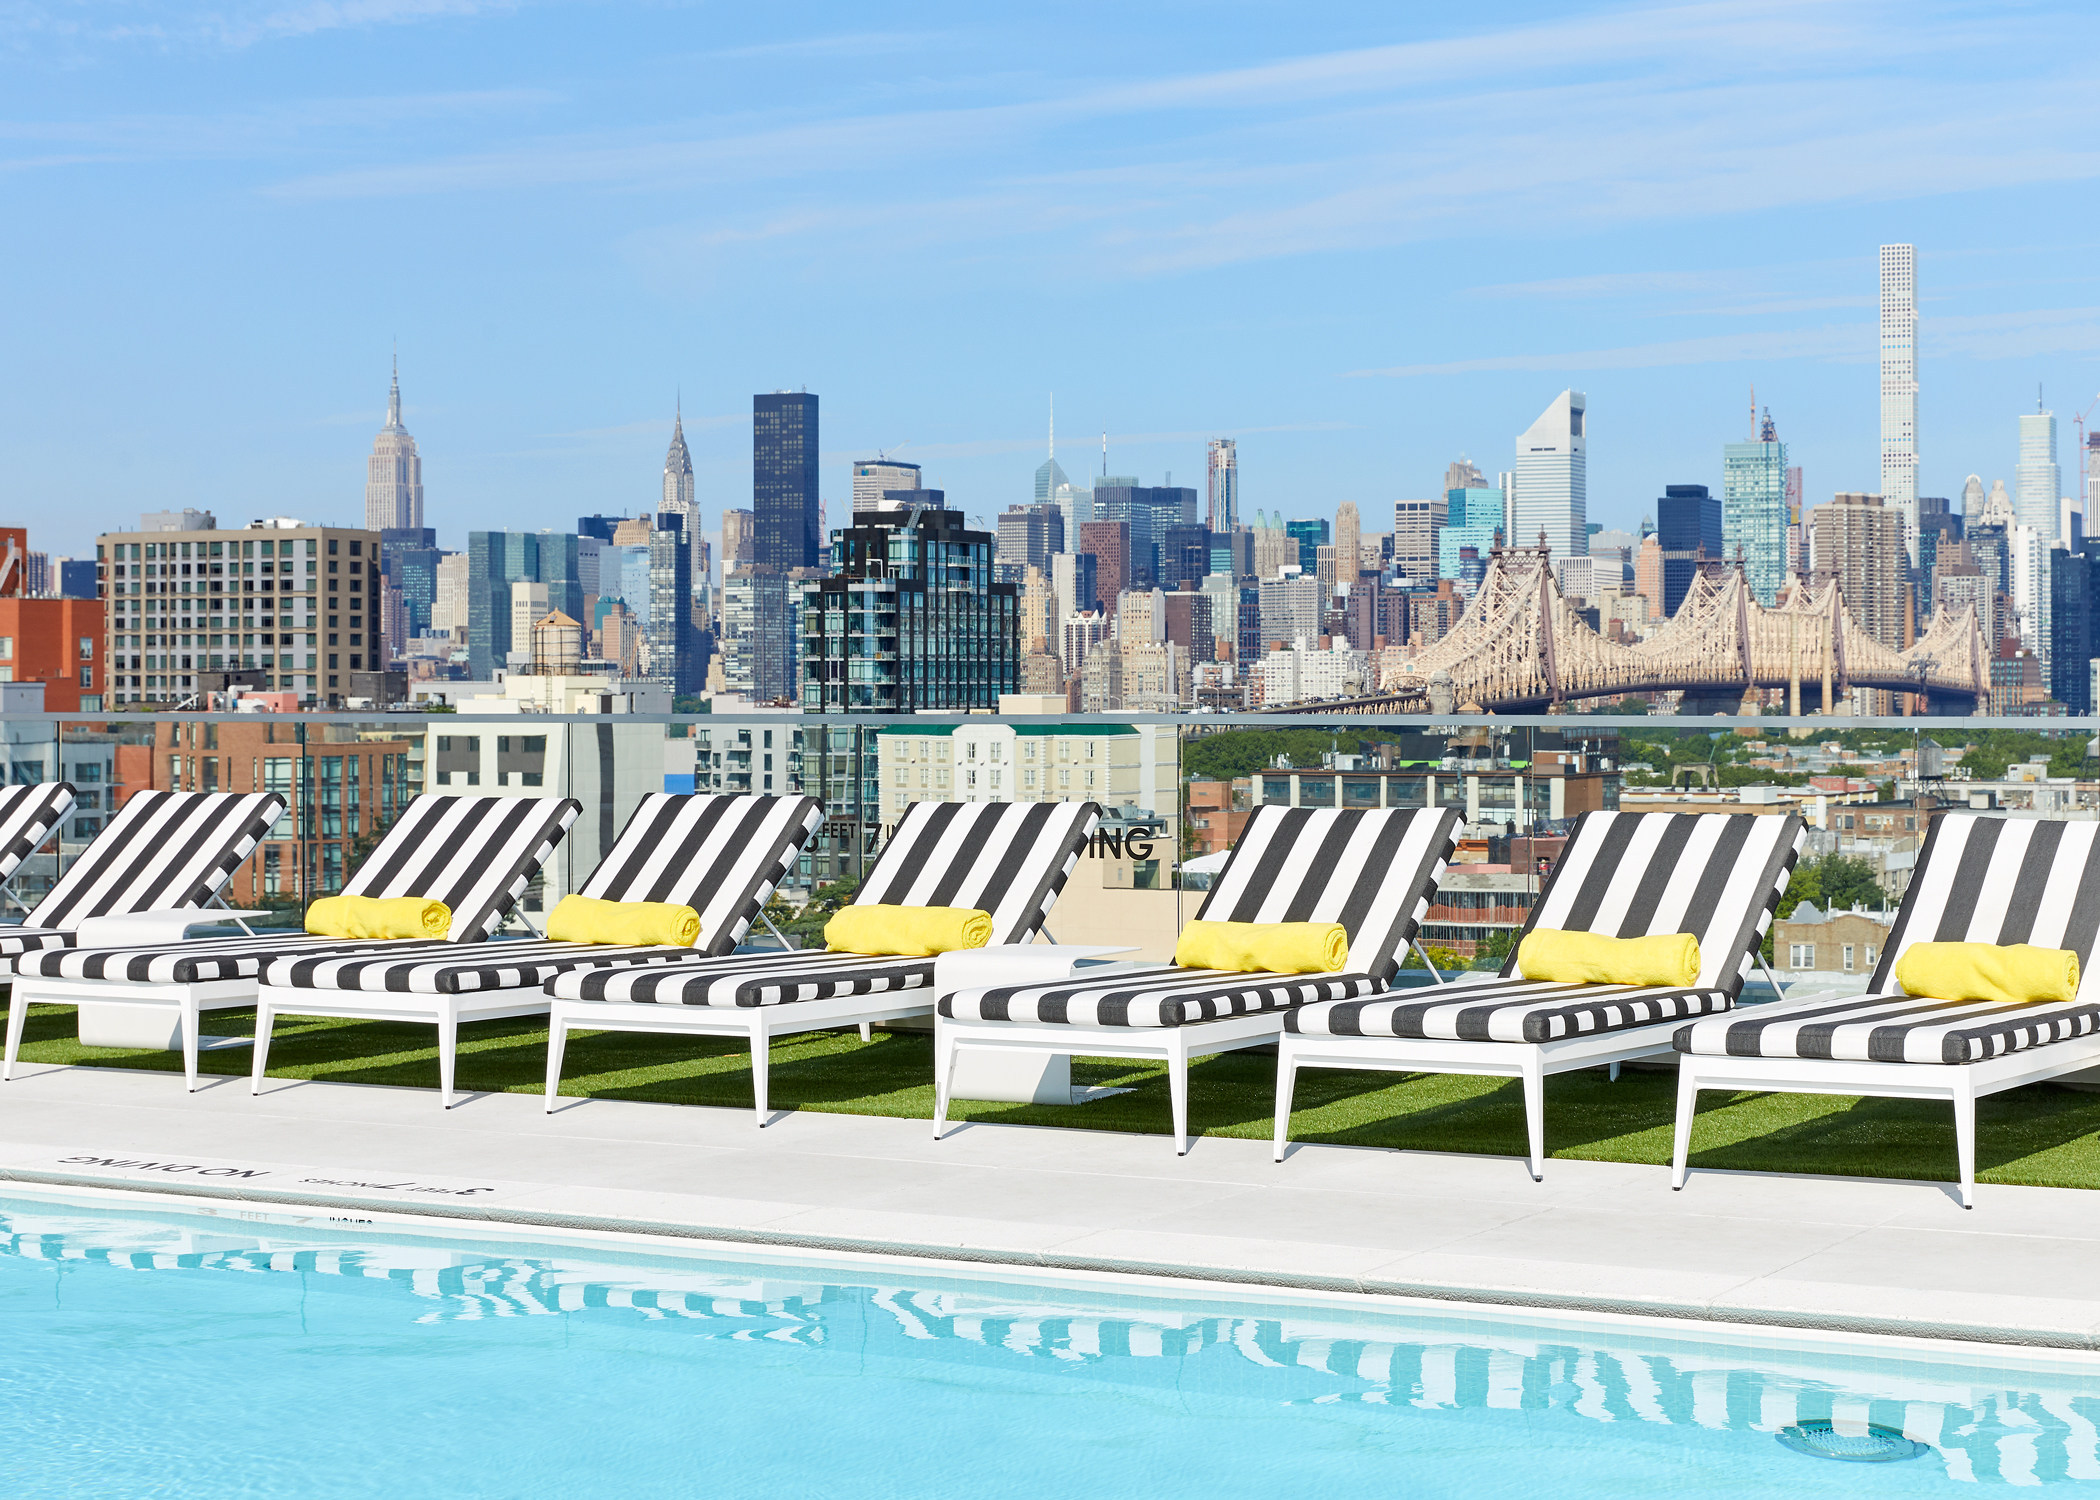 ARC offers 50,000 square feet of amenities, featuring a 70-foot long environmentally-friendly salt water rooftop pool